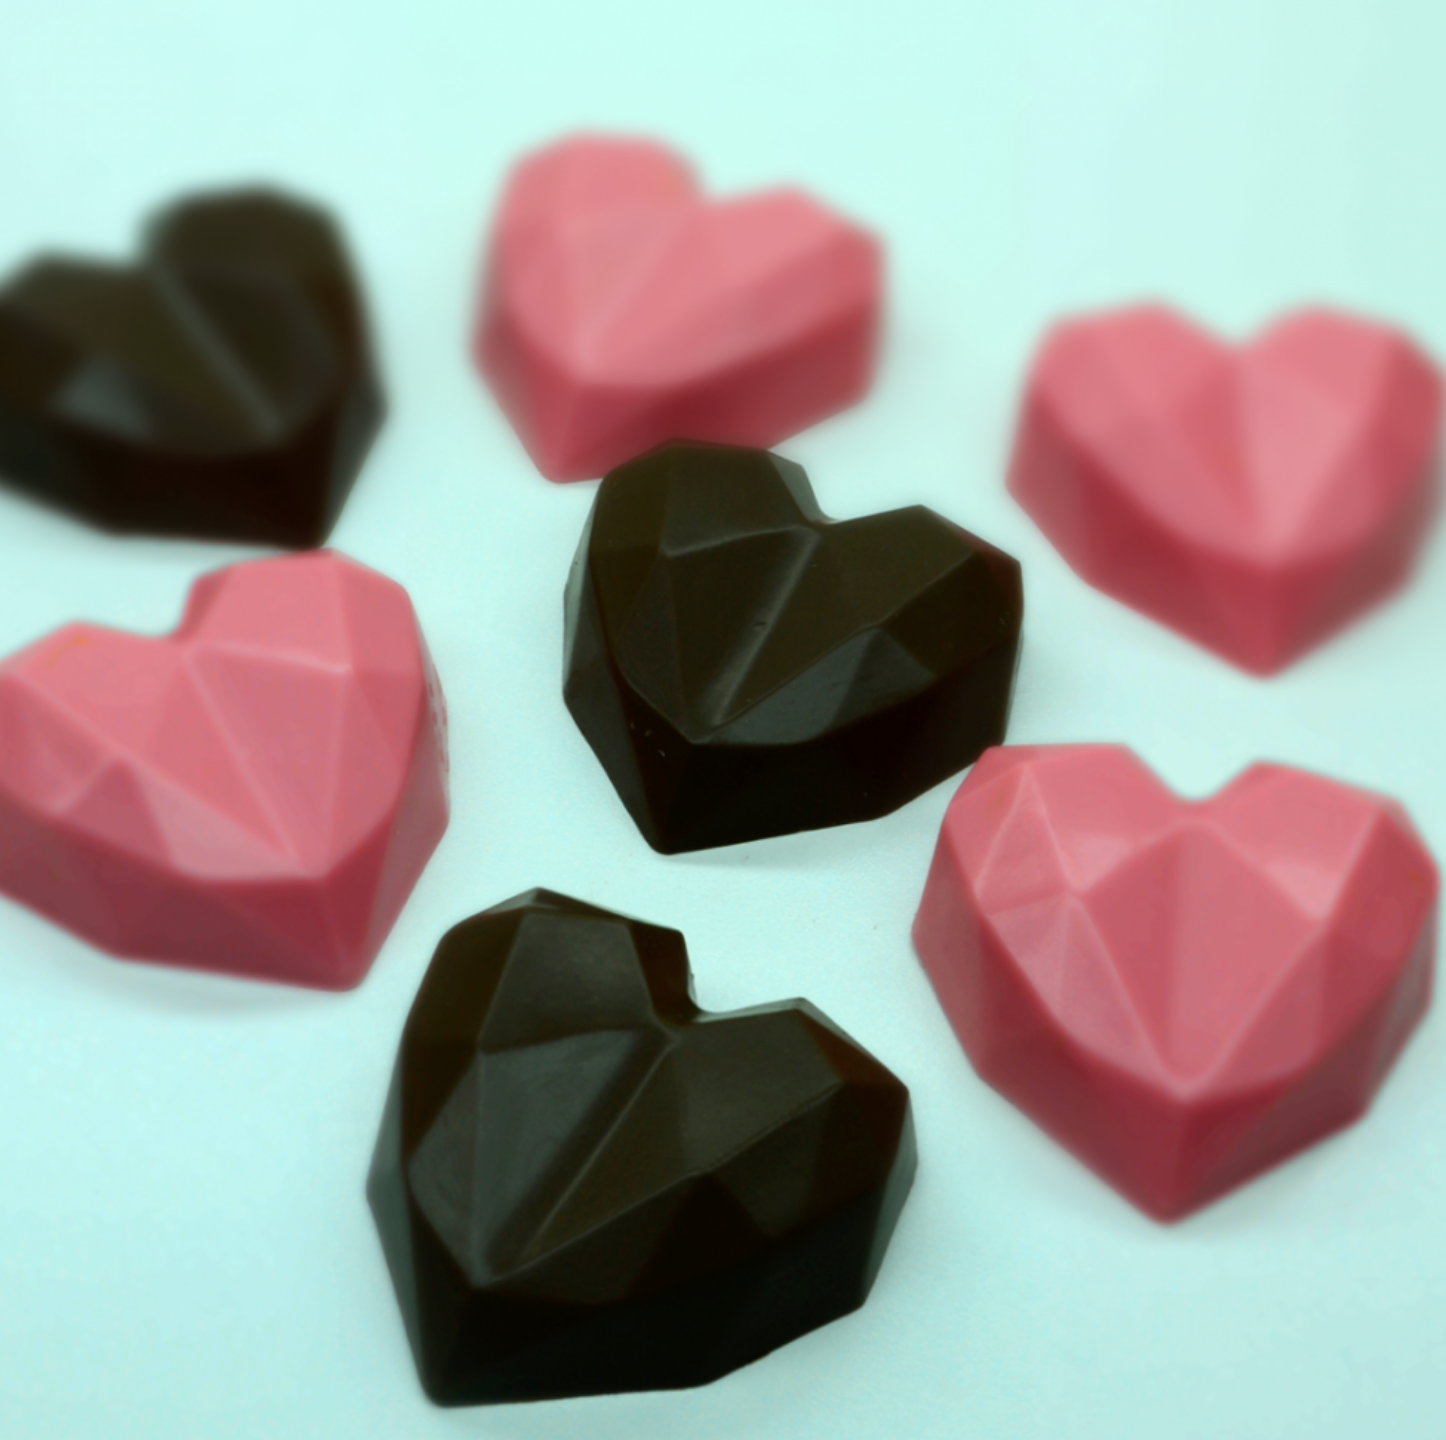 Faceted Heart Truffle - 3 Part Mold - 10 PER ORDER ONLY - PRE-ORDER - Arriving Jan. 19th